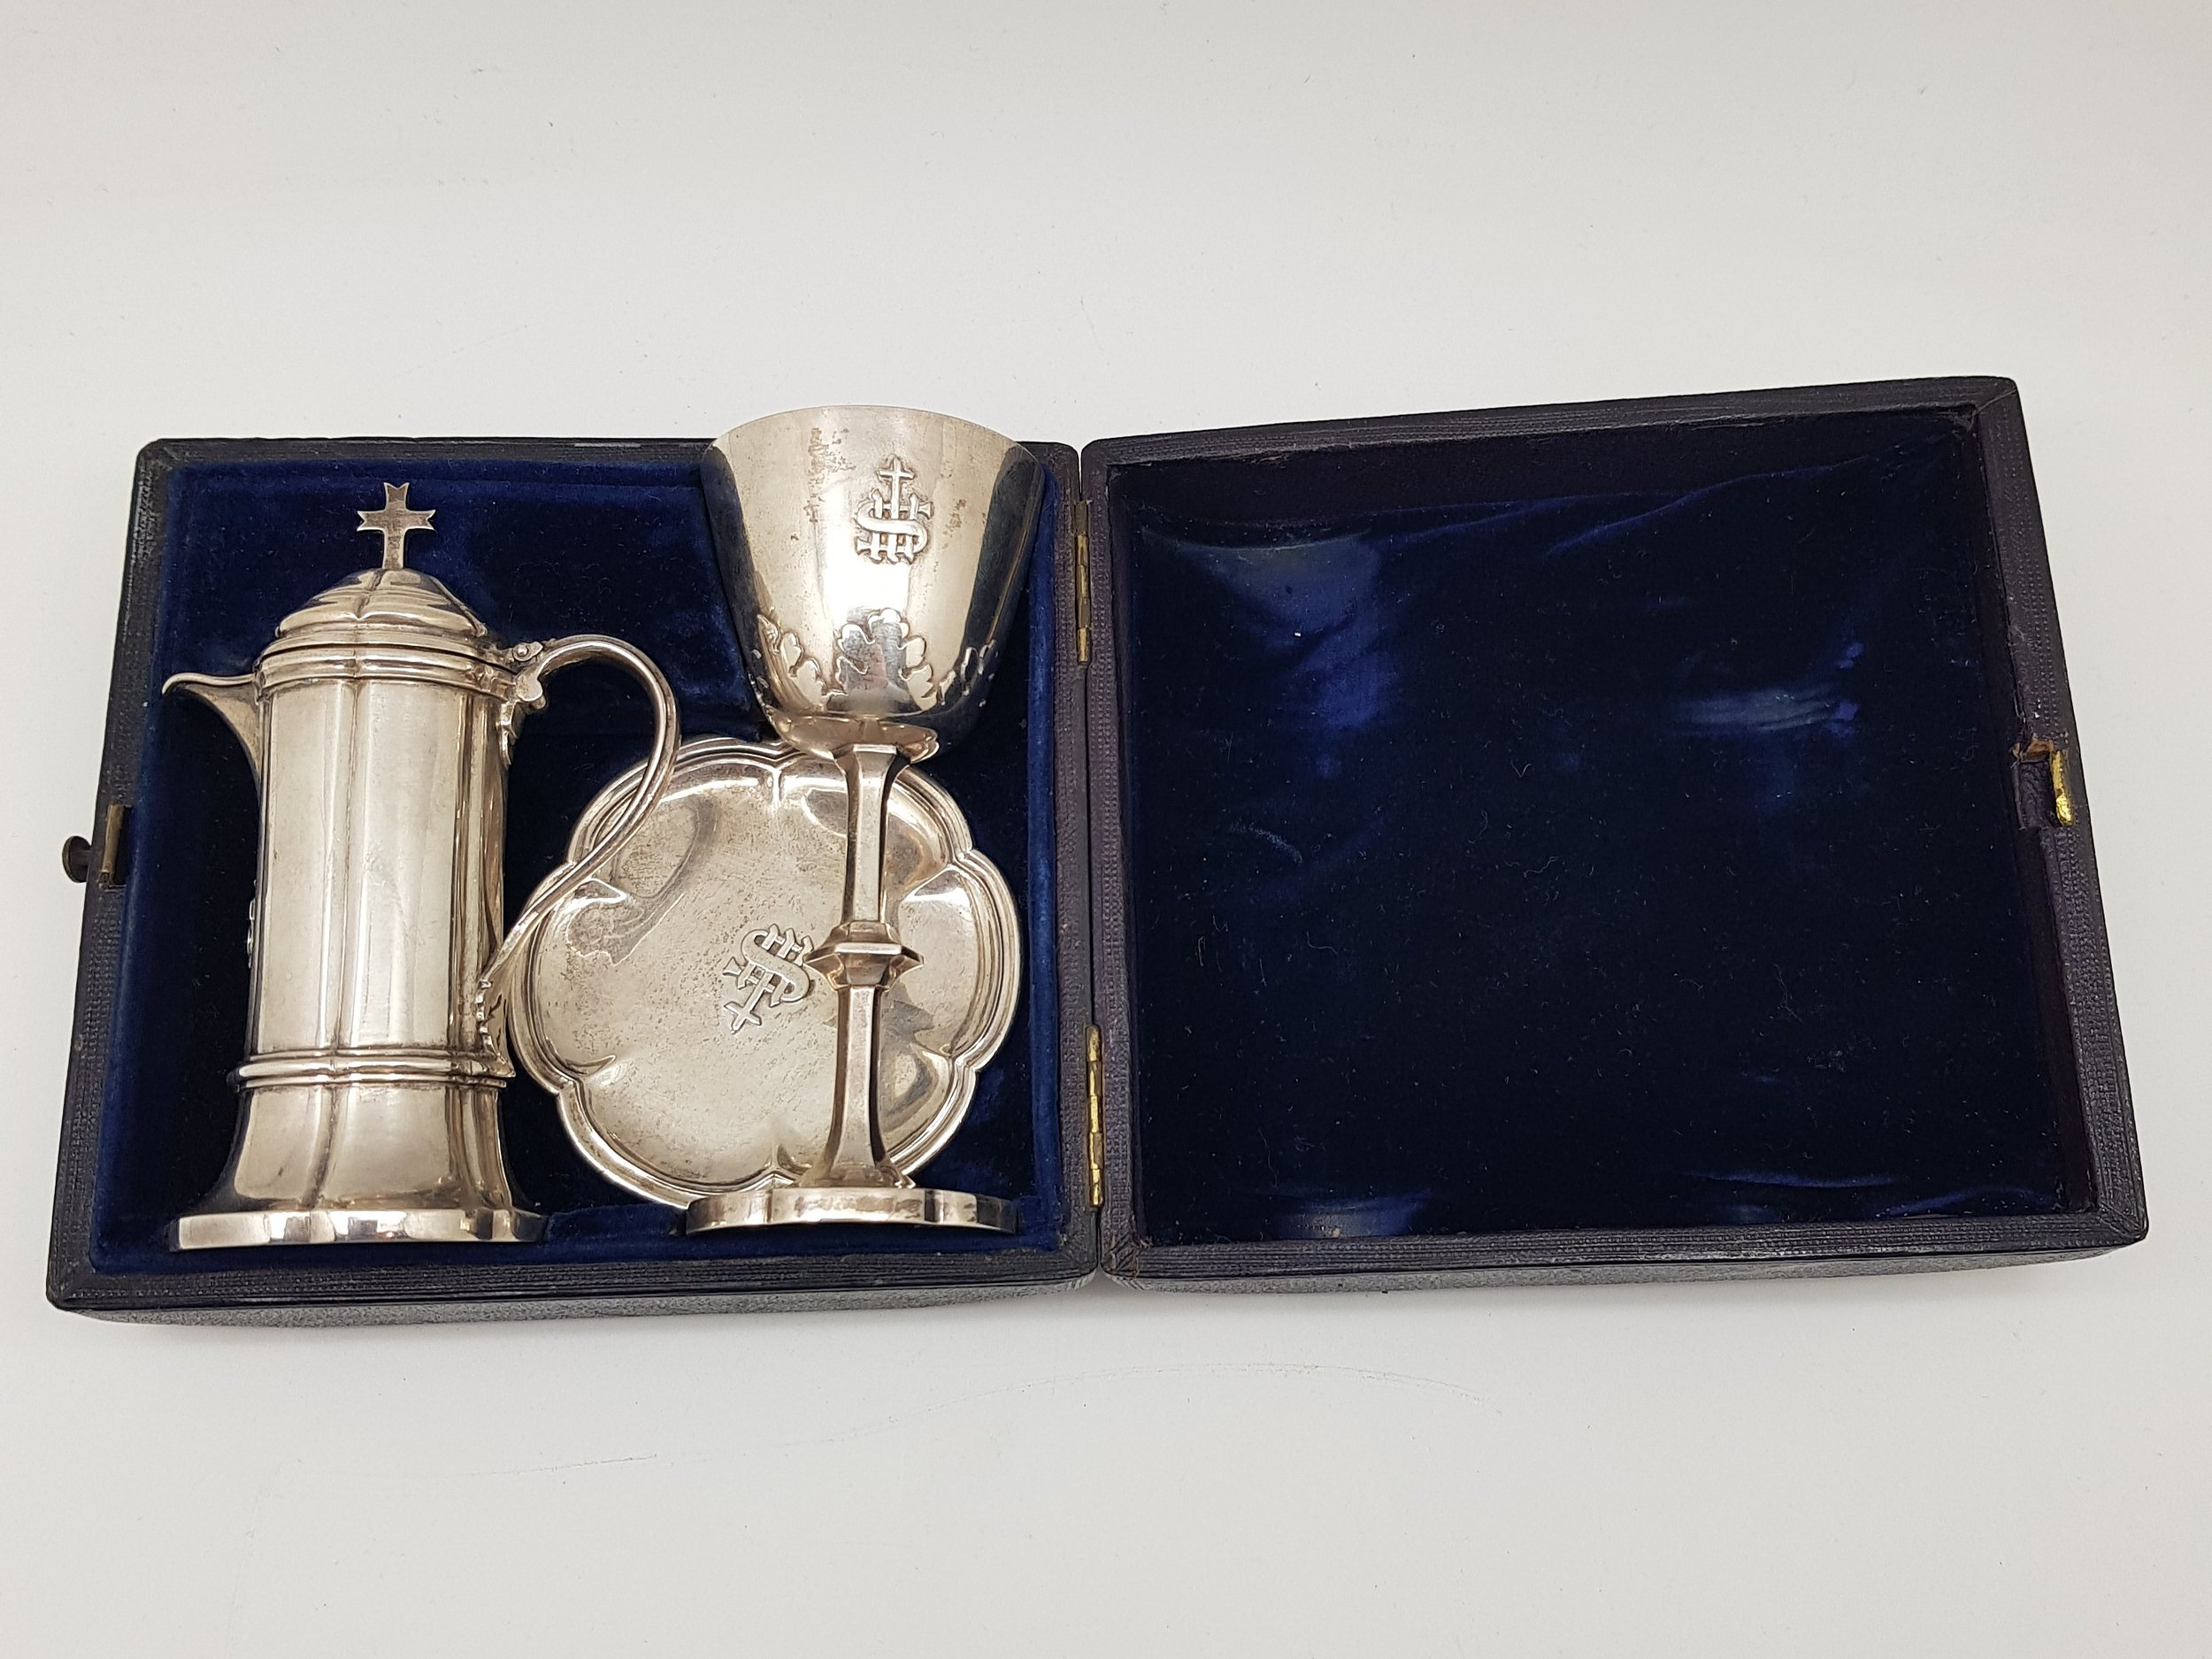 'Victorian Sterling Silver Three Piece Holy Communion Travel Set Boxed in Plush Case- George Ivory, London 1848'